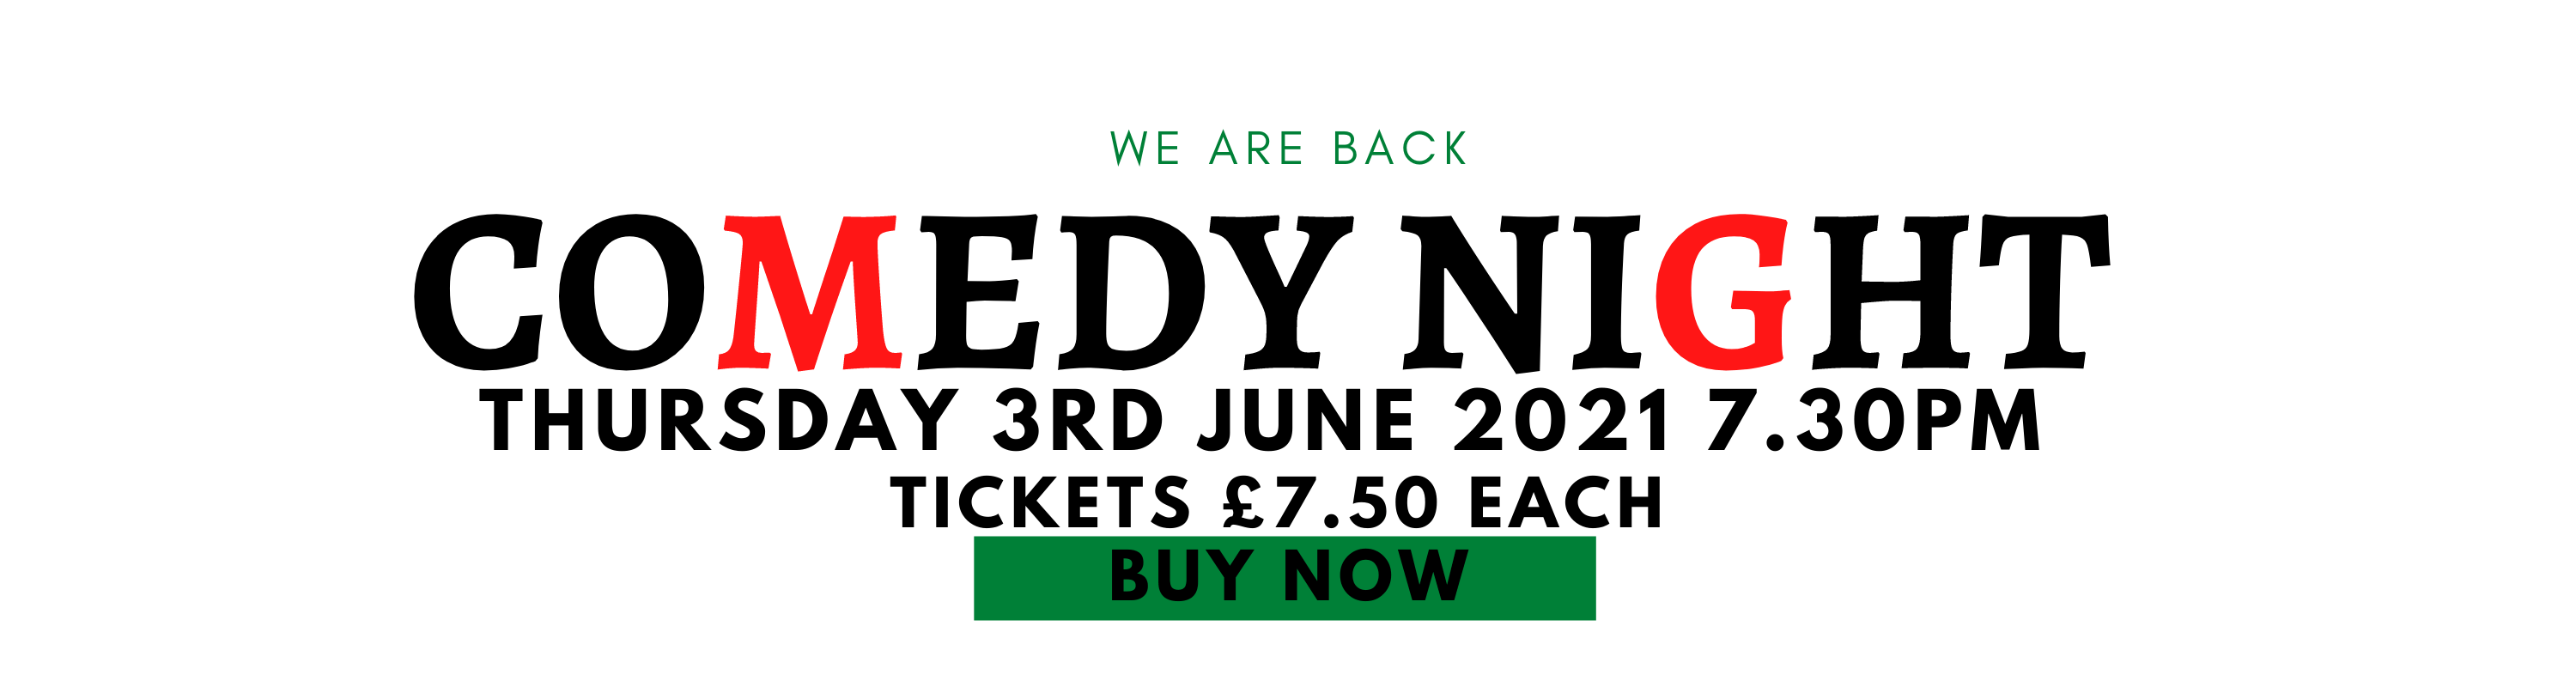 Comedy Night Banner